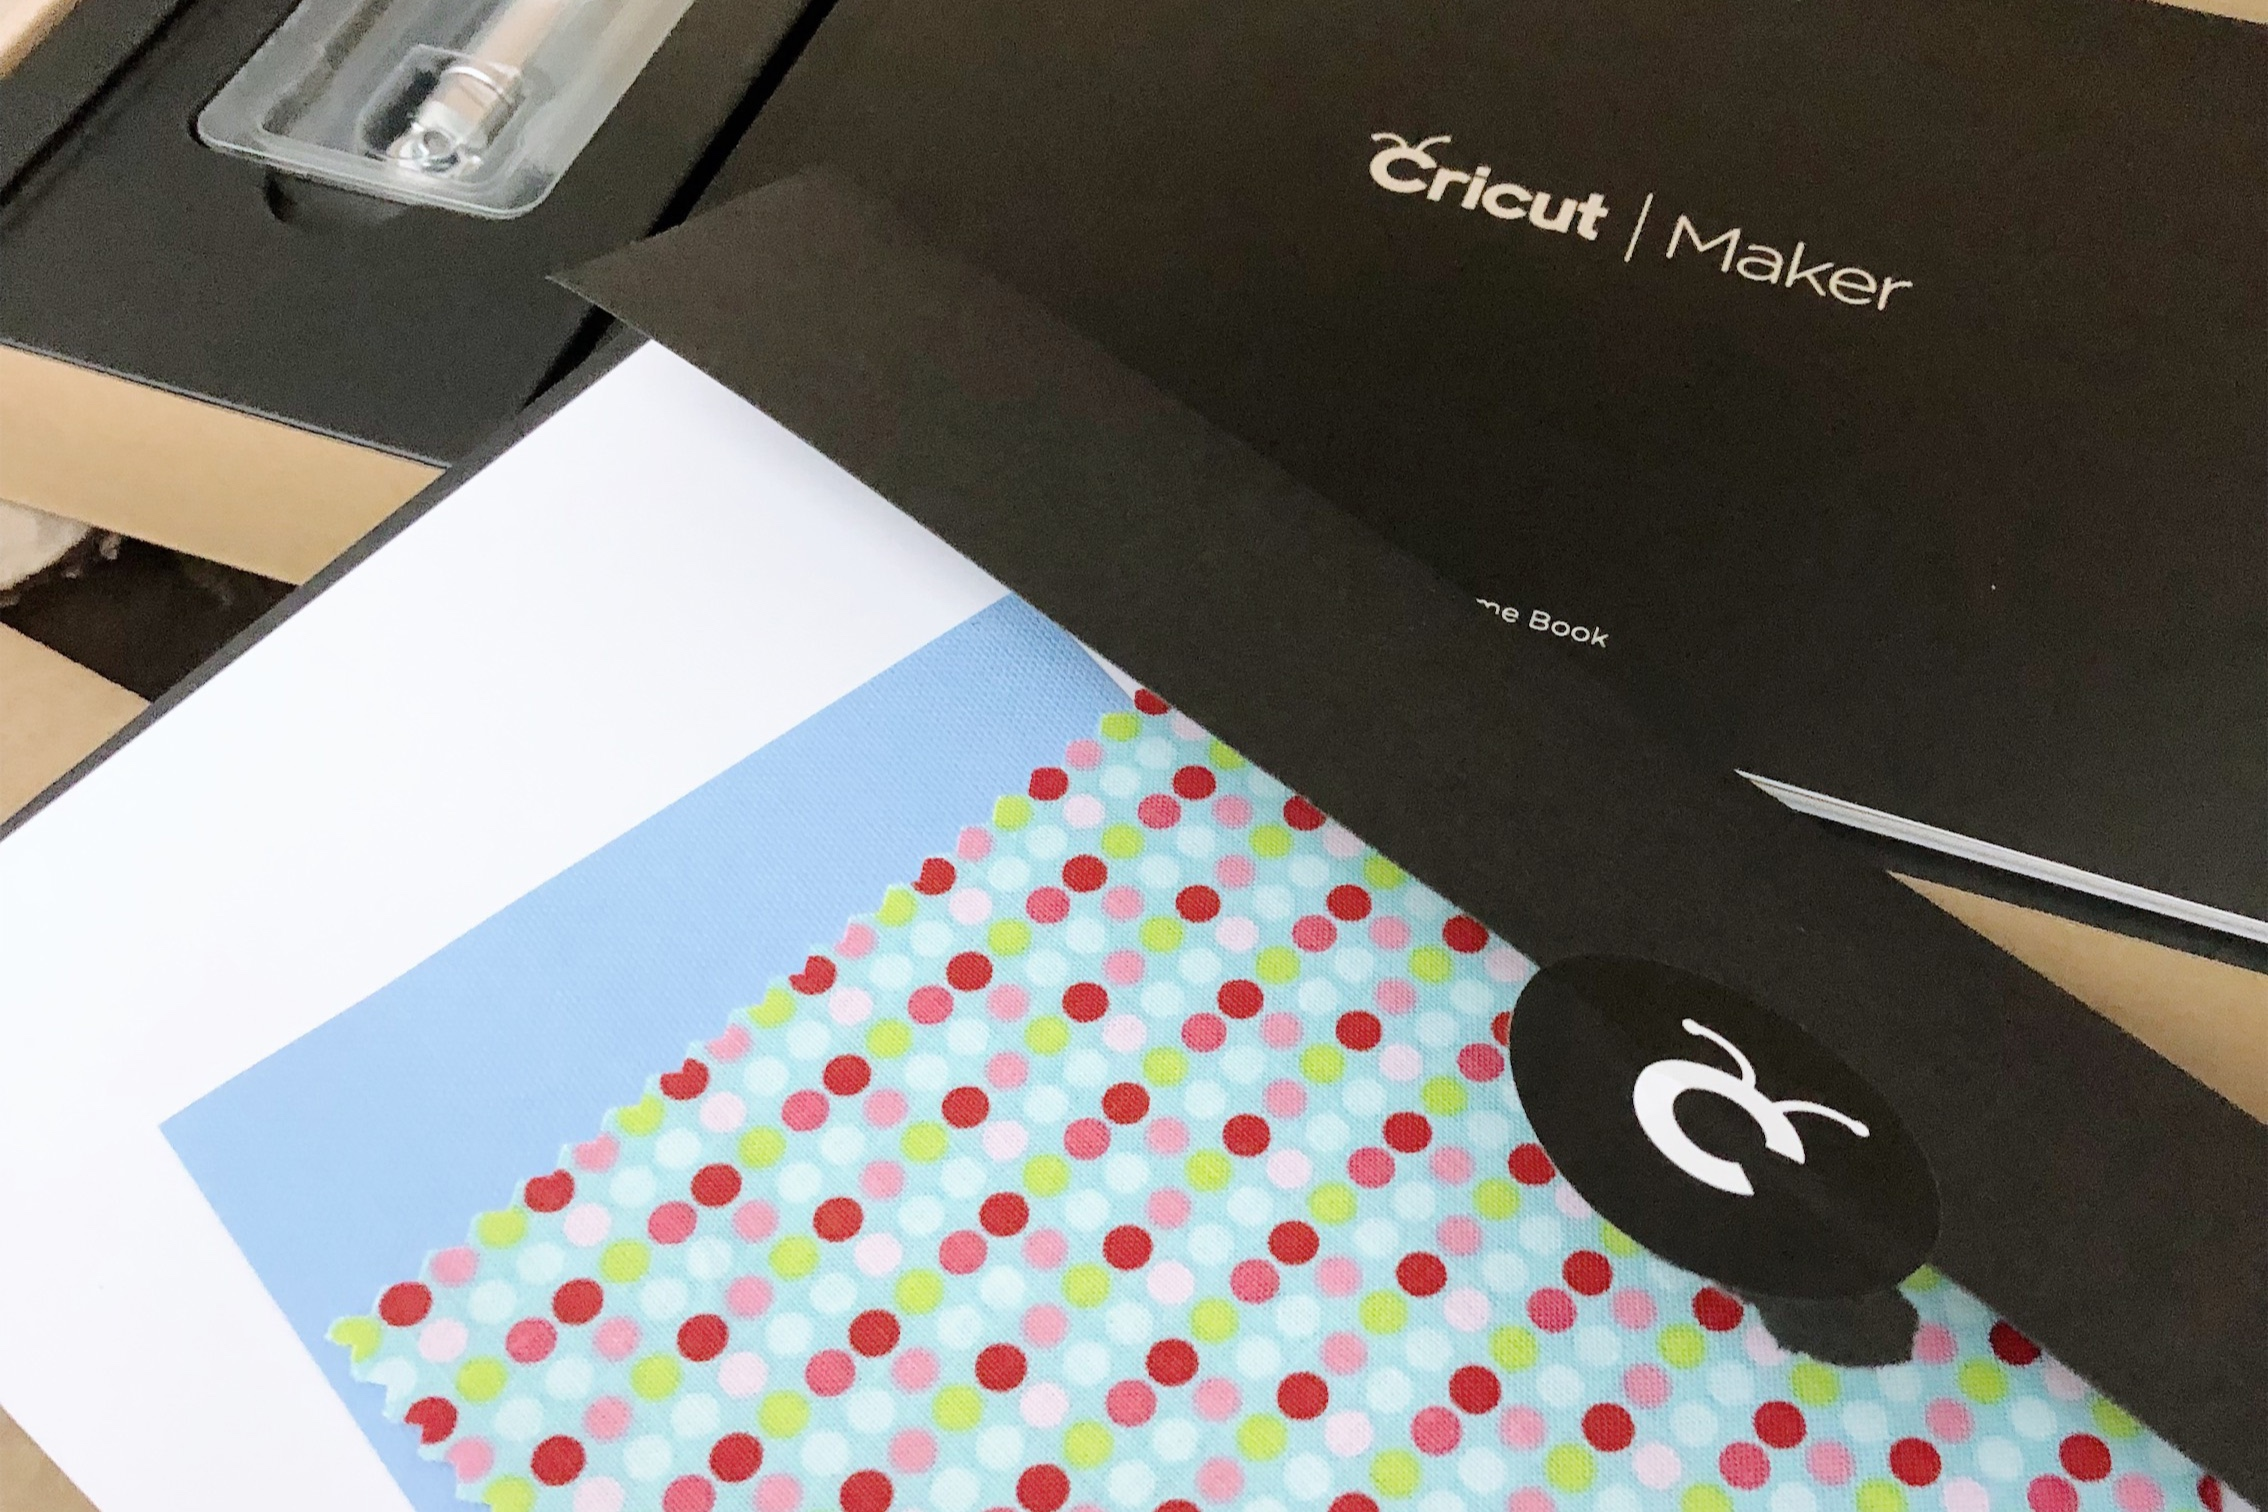 These materials included for a first-project were so thoughtfully packaged inside a sealed black envelope.